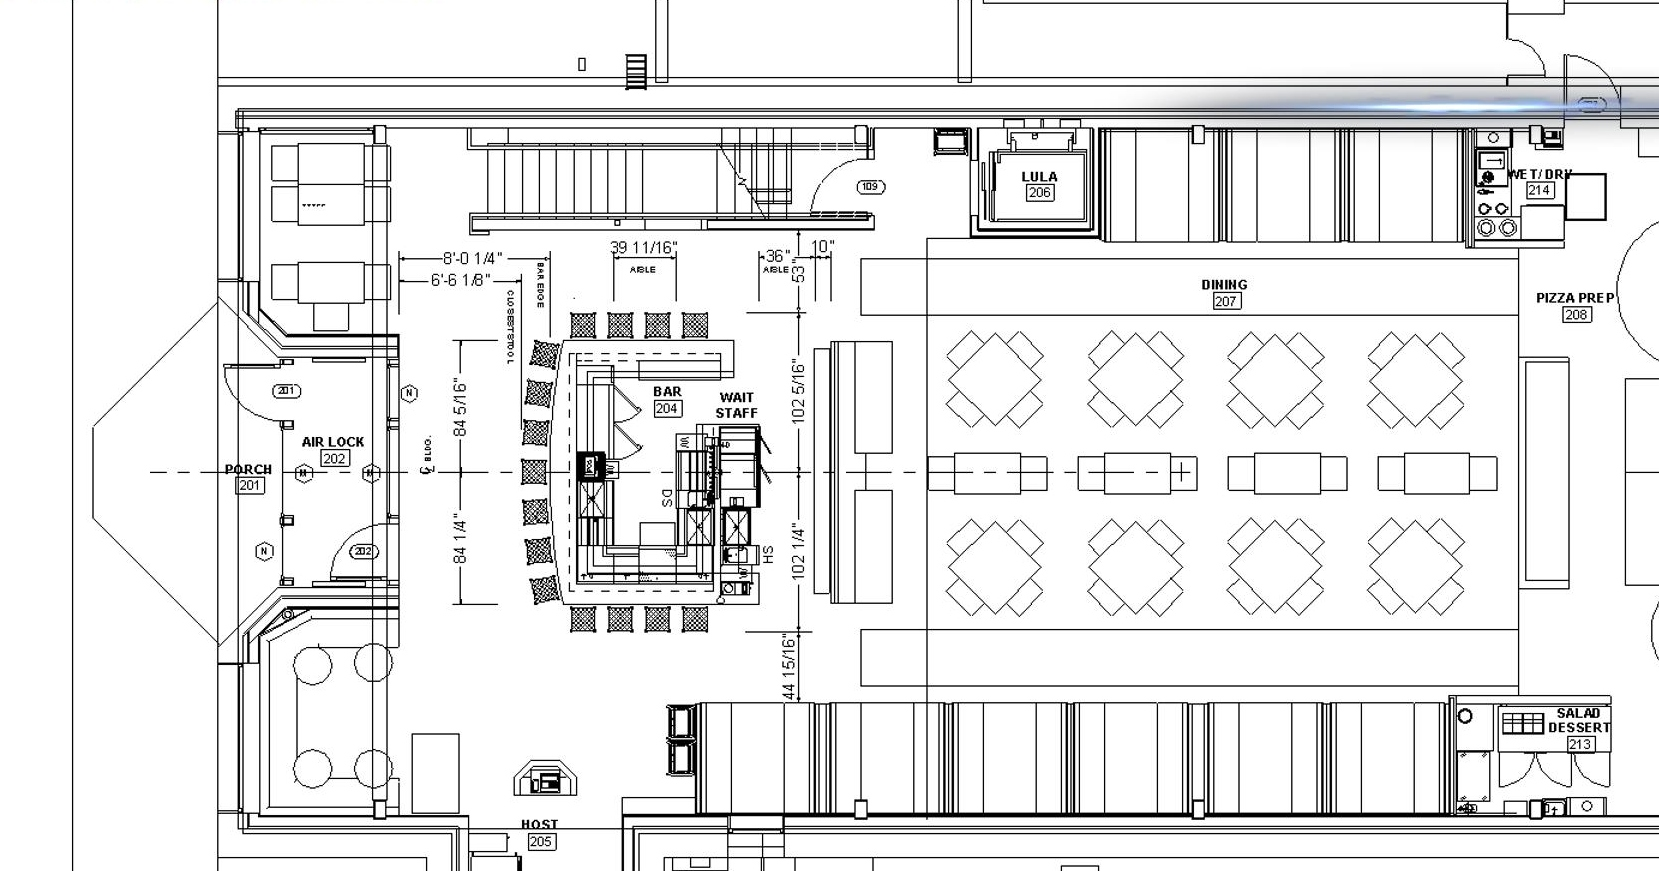 Architectural drawing of restaurant/bar with an occupancy of 145